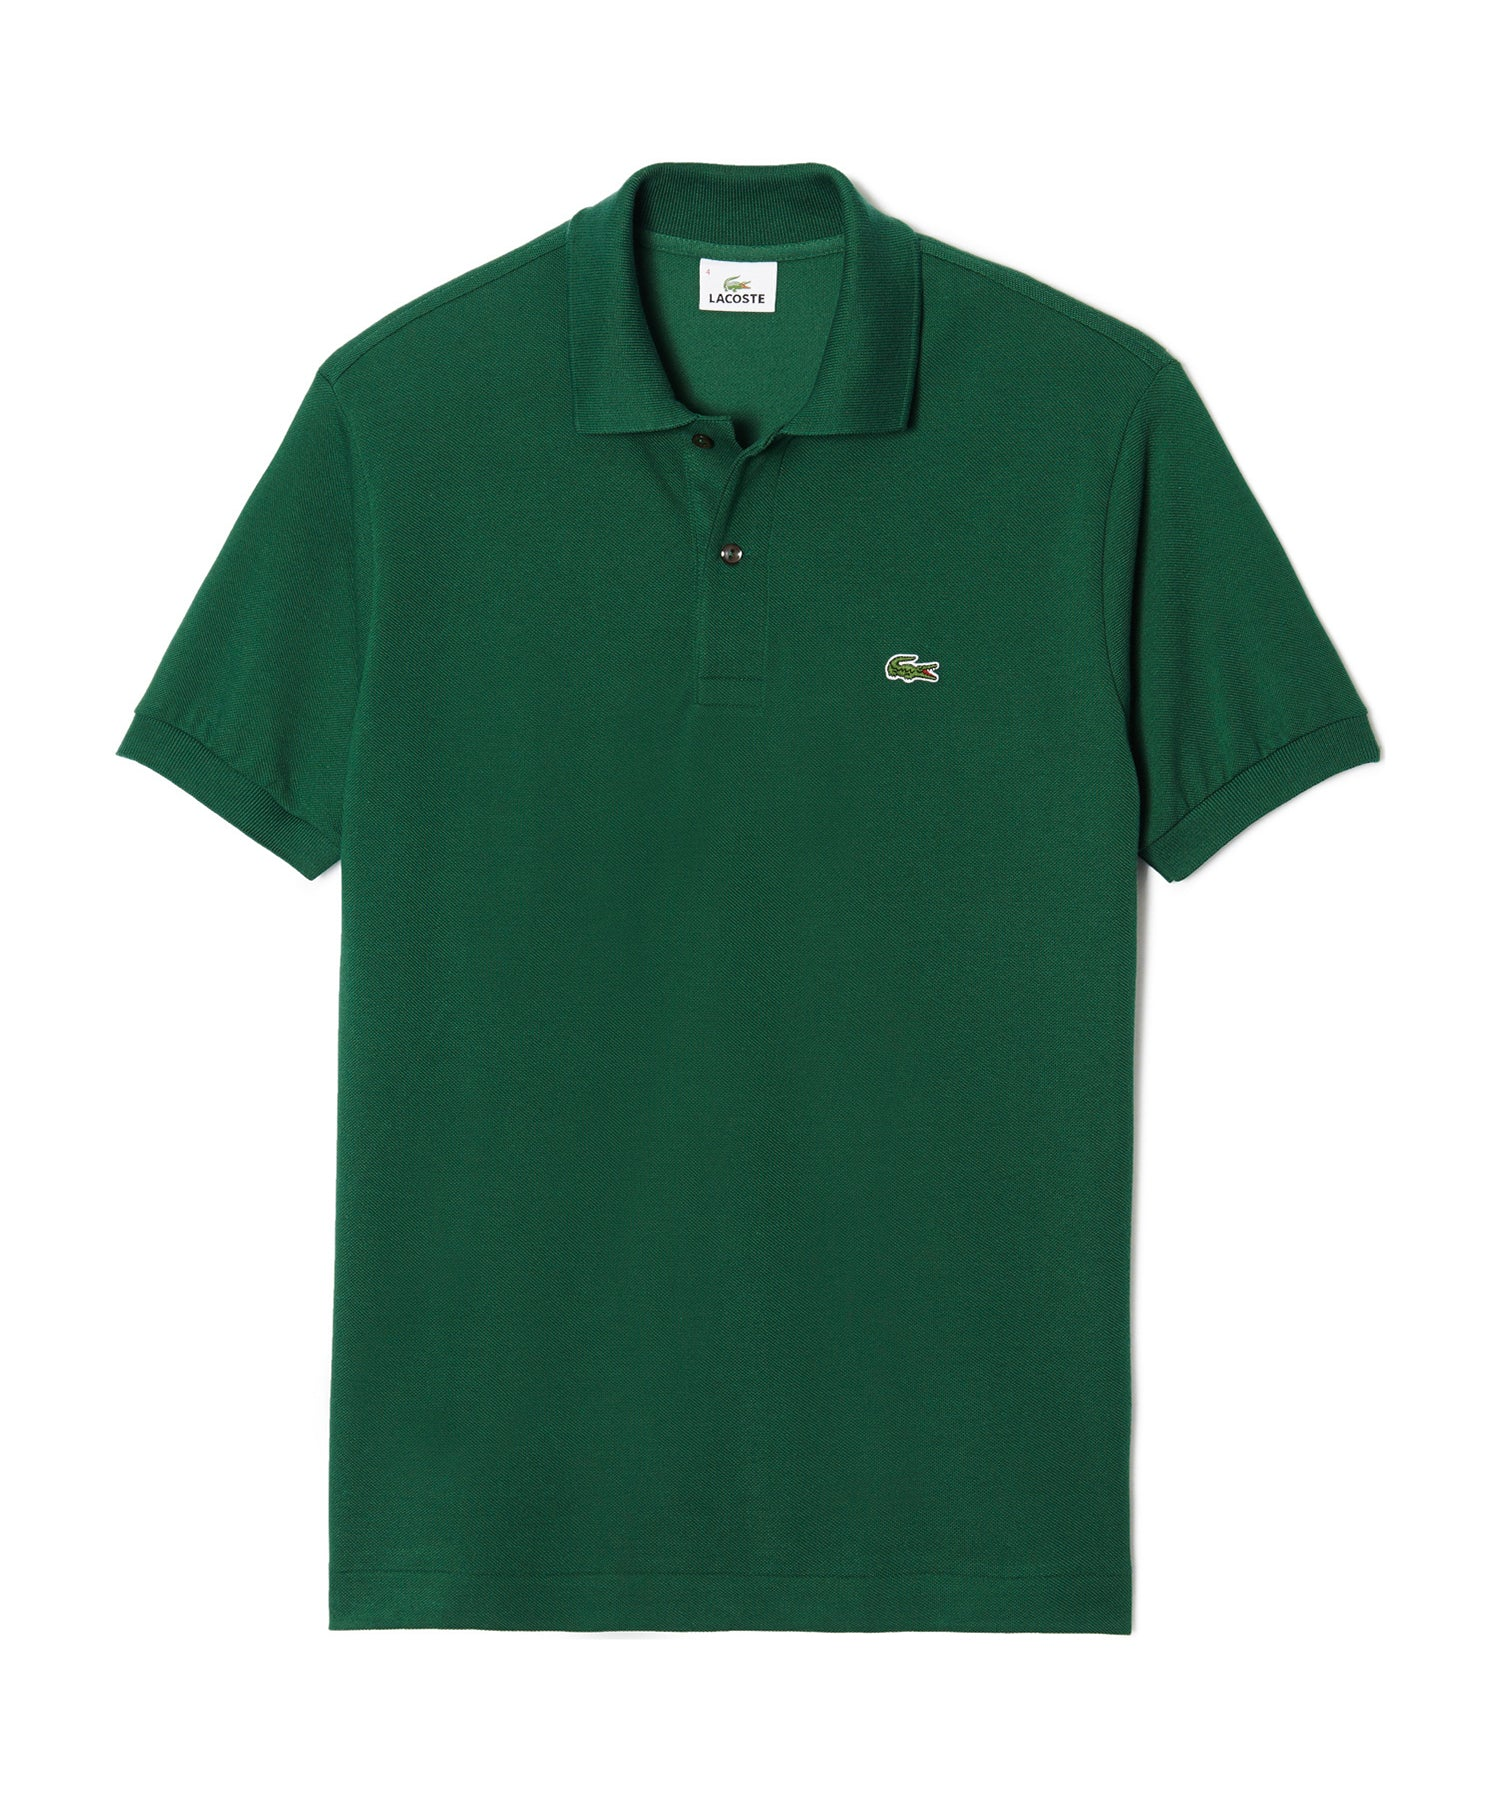 LACOSTE CLASSIC FIT POLO in Green